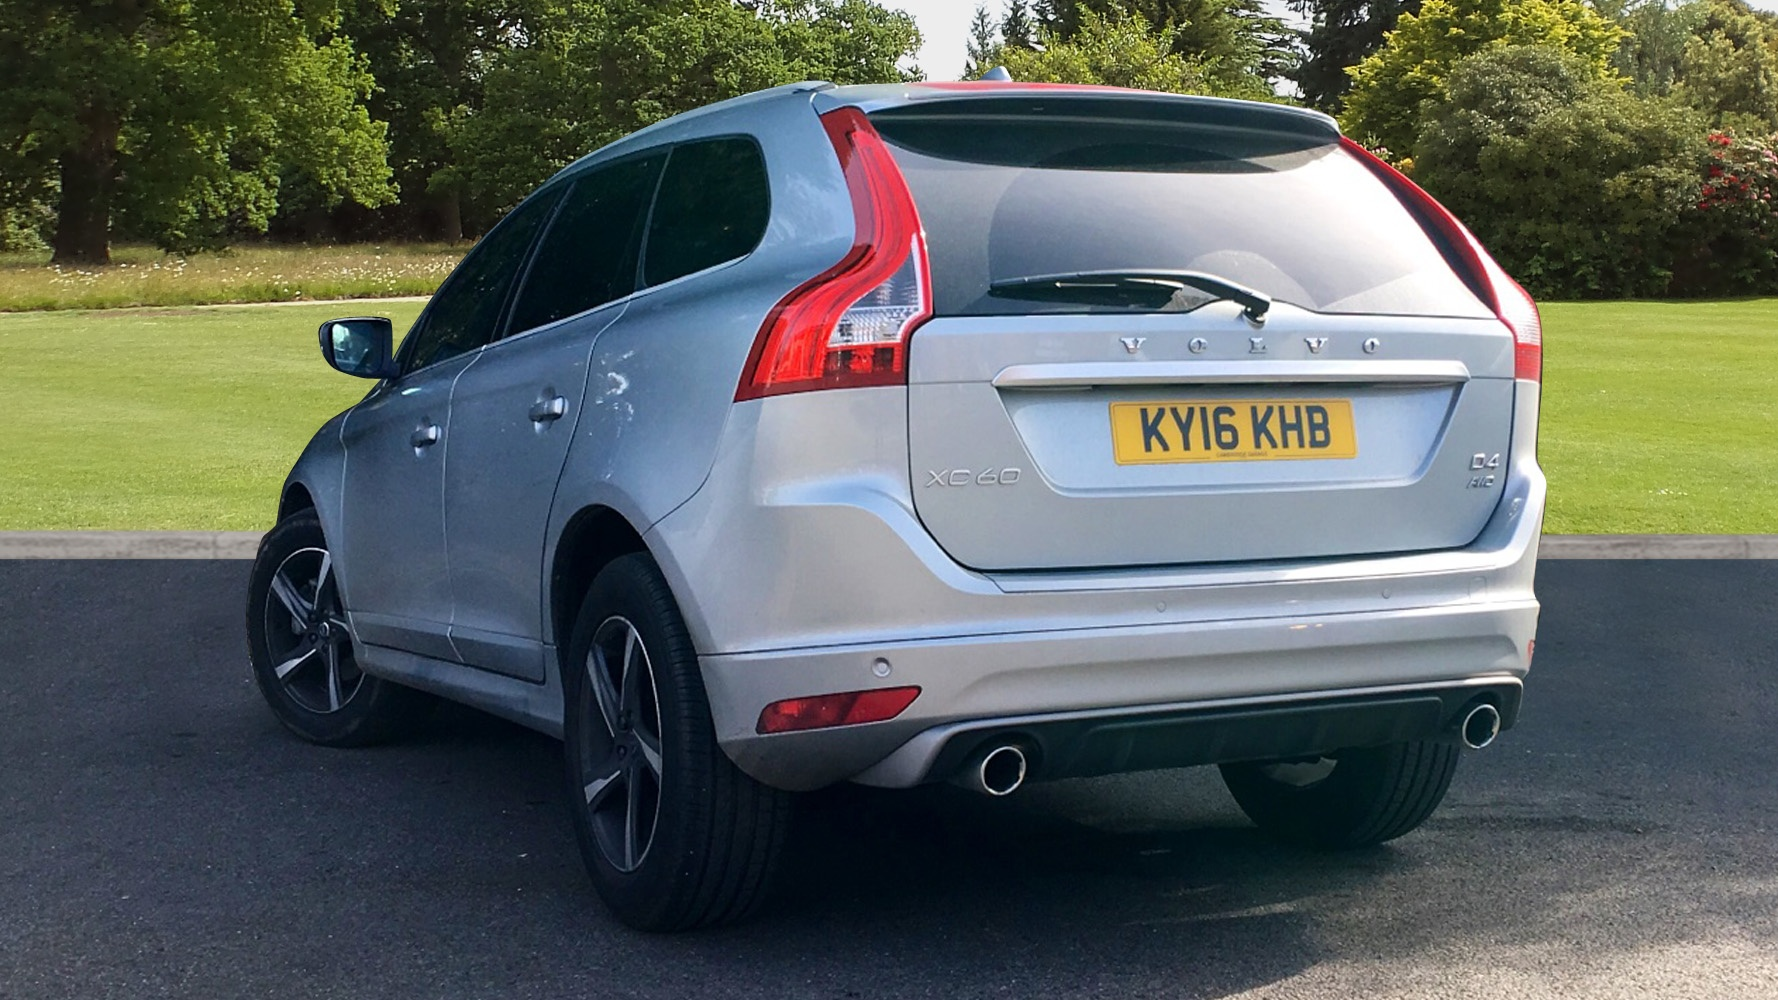 volvo xc60 d4 190 awd r design lux nav automatic used vehicle by cambridge garage havant havant. Black Bedroom Furniture Sets. Home Design Ideas